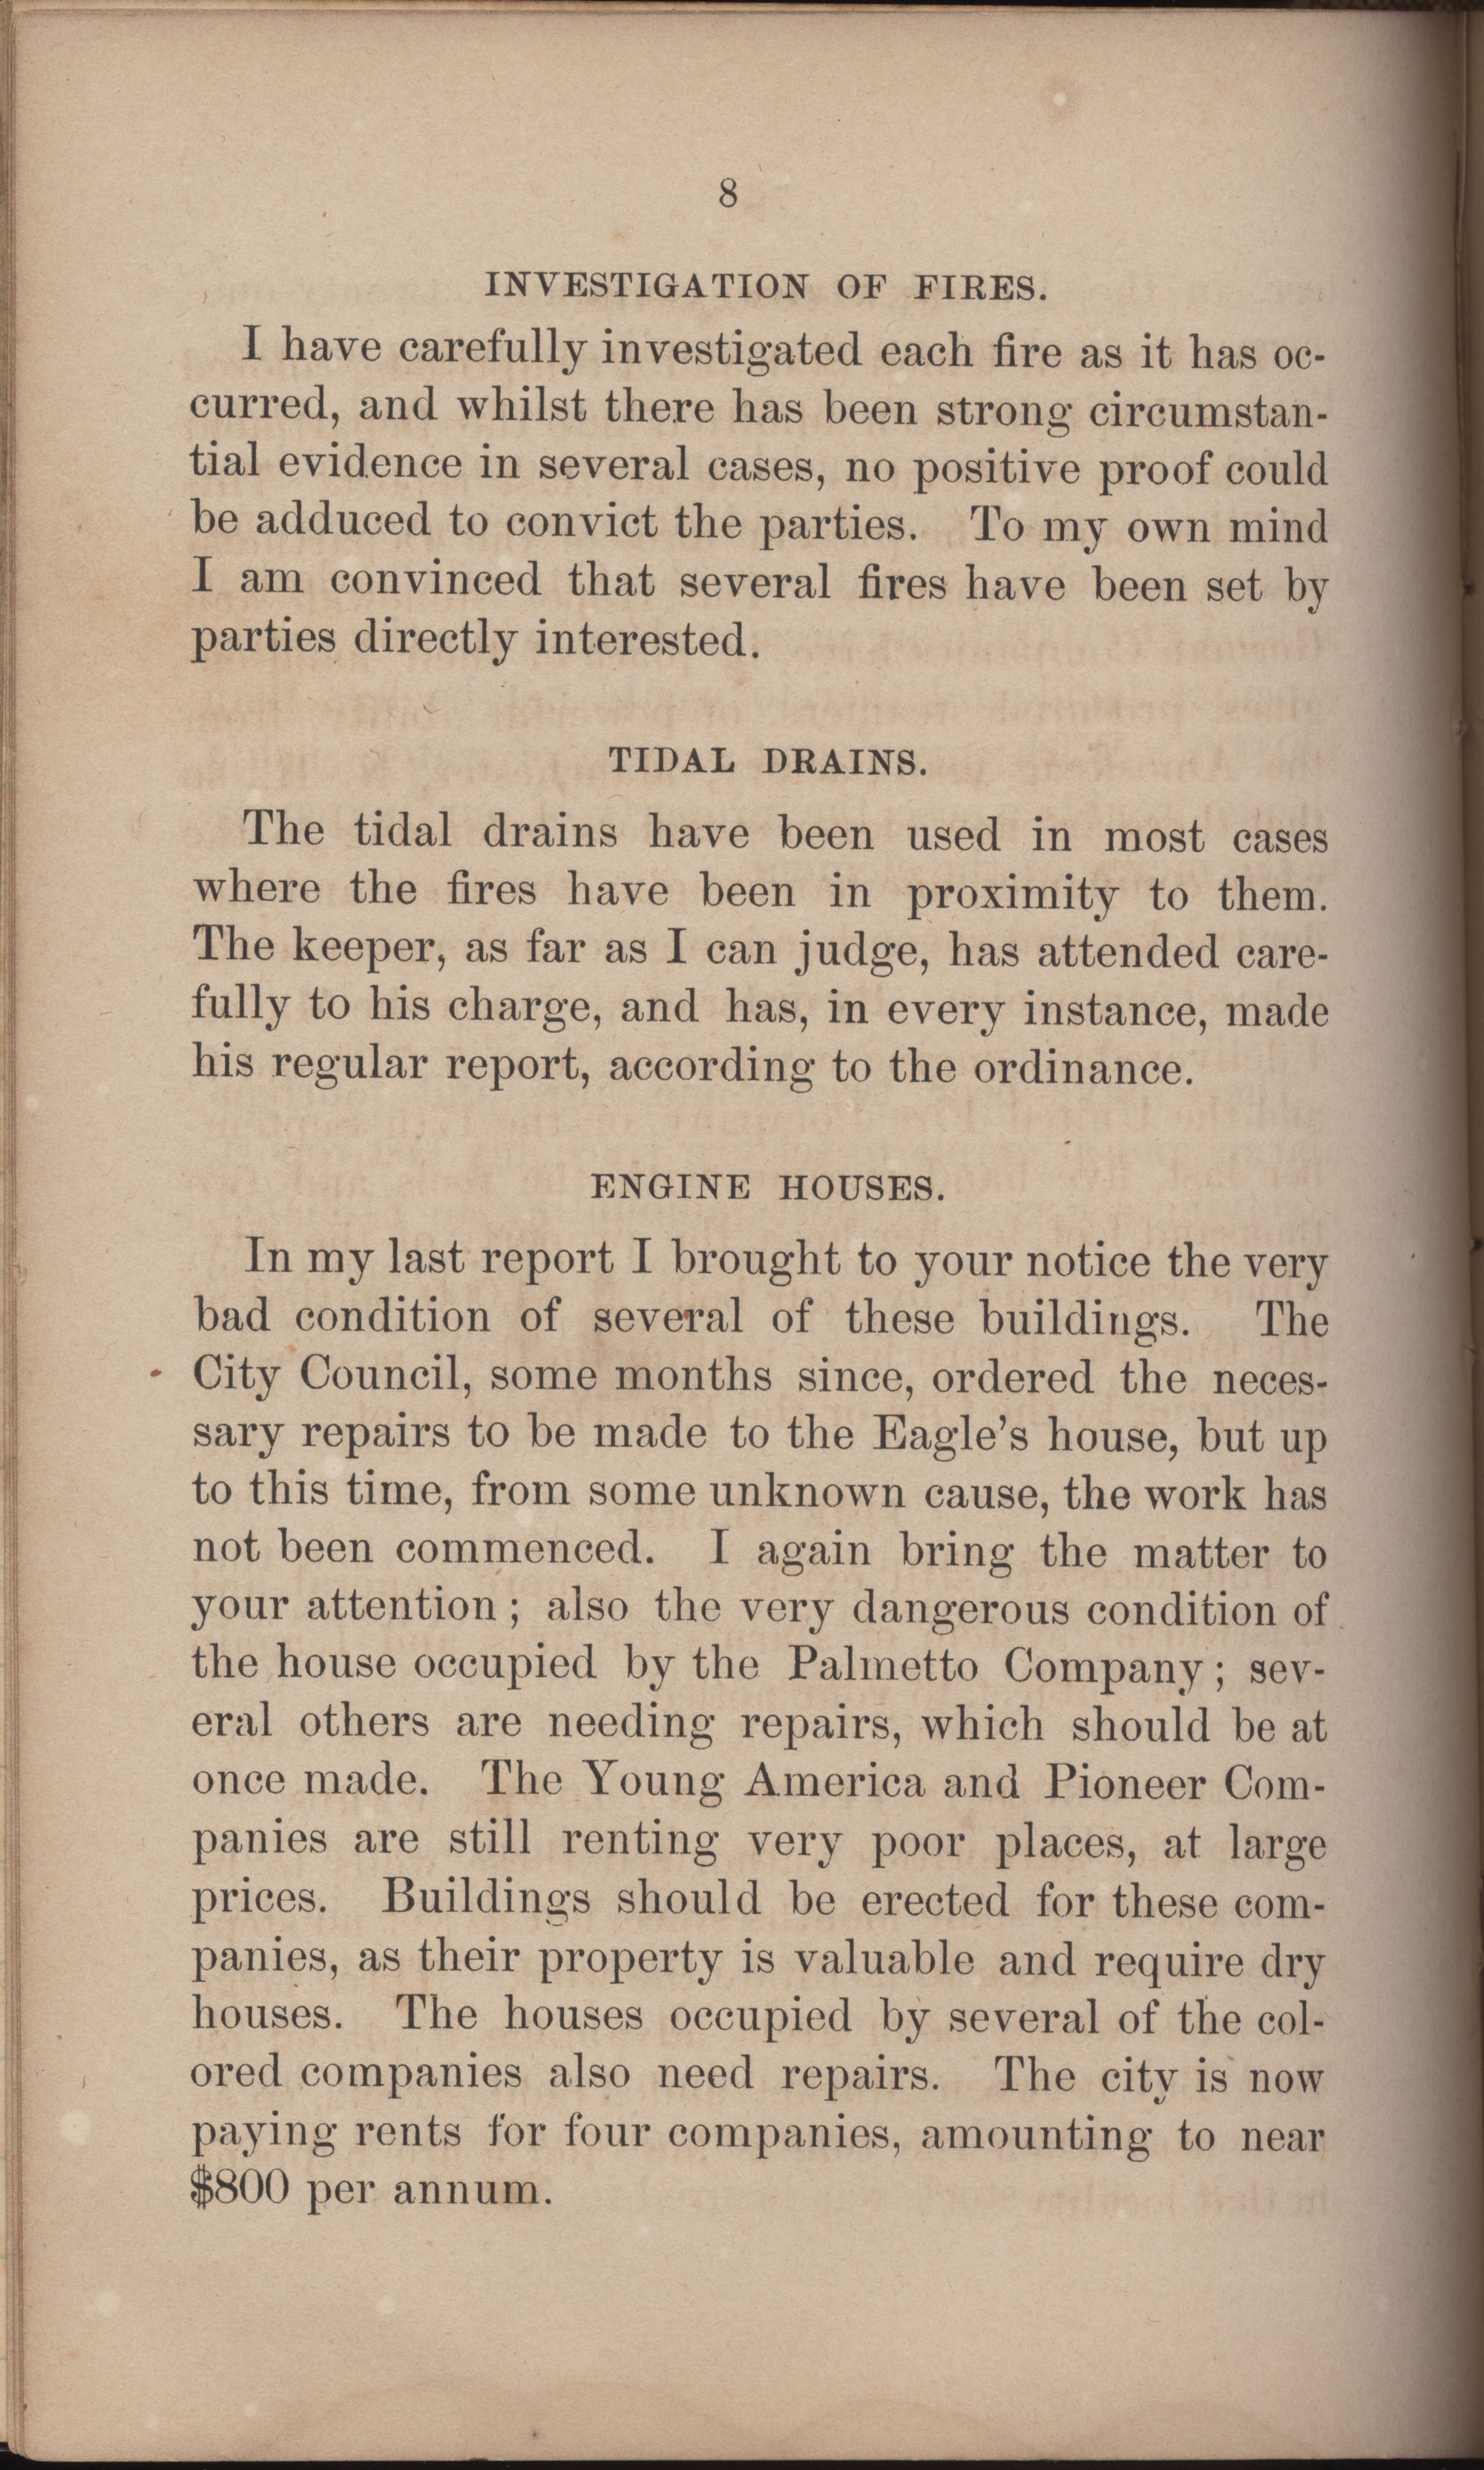 Annual Report of the Chief of the Fire Department of the City of Charleston, page 299